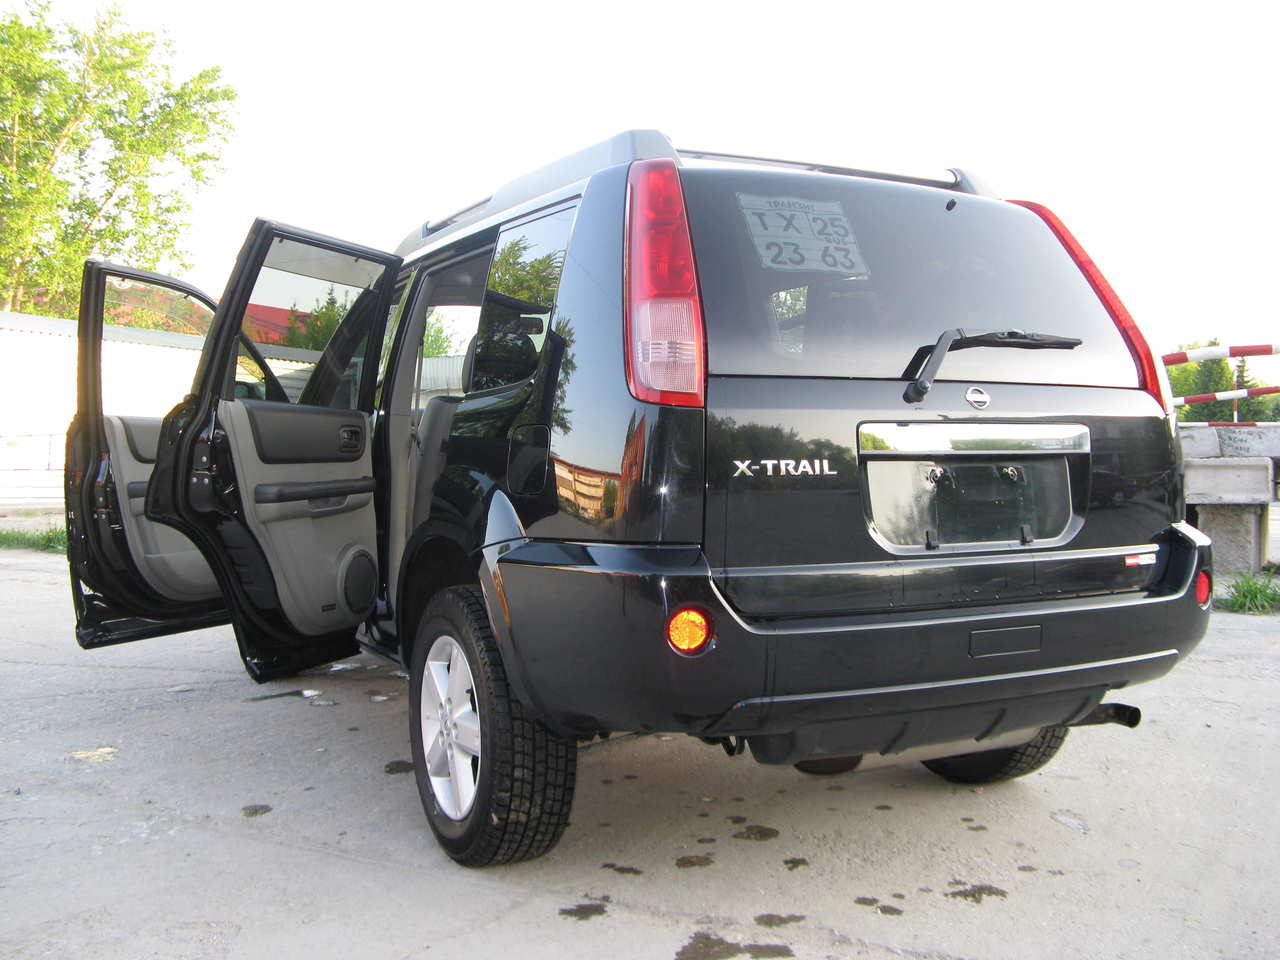 2003 nissan x trail photos gasoline automatic for sale. Black Bedroom Furniture Sets. Home Design Ideas